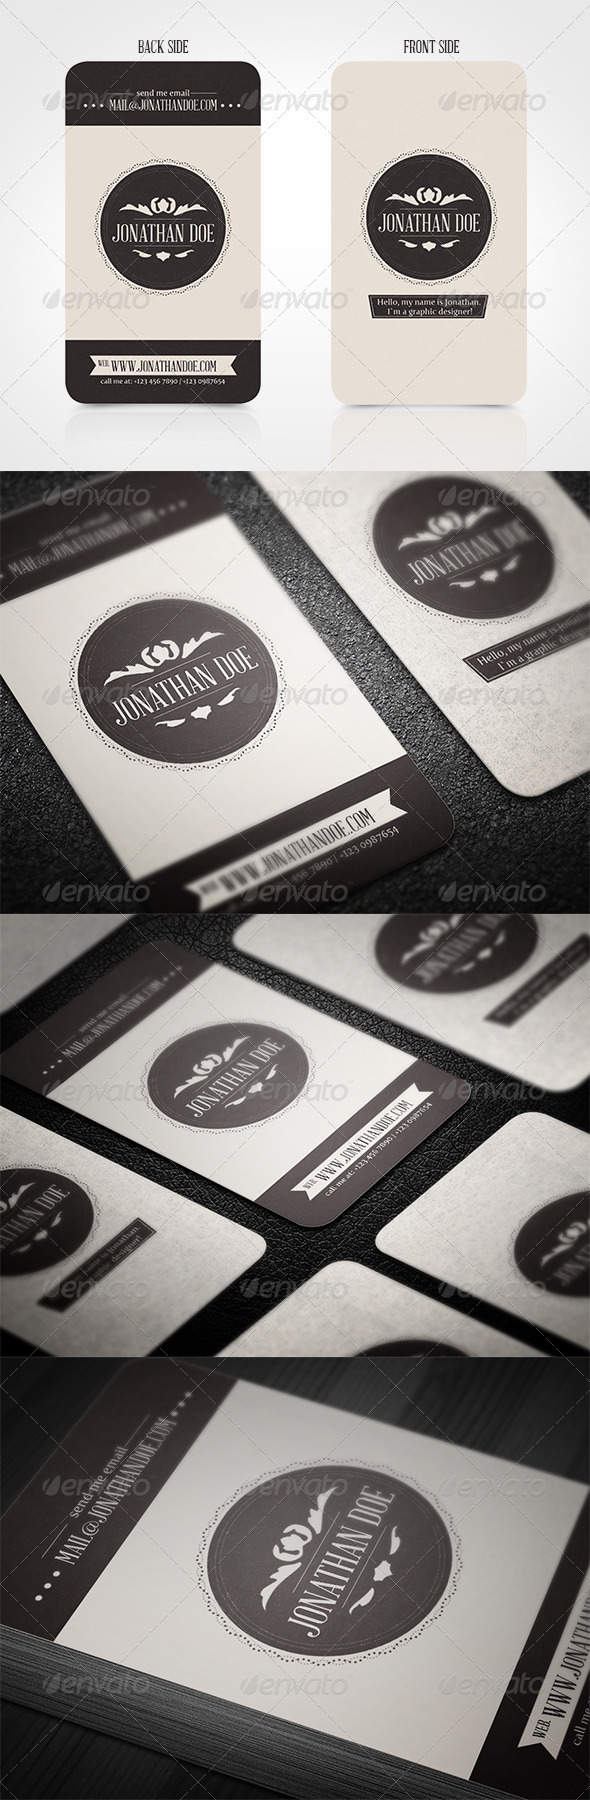 GraphicRiver Vintage Business Card 3695829